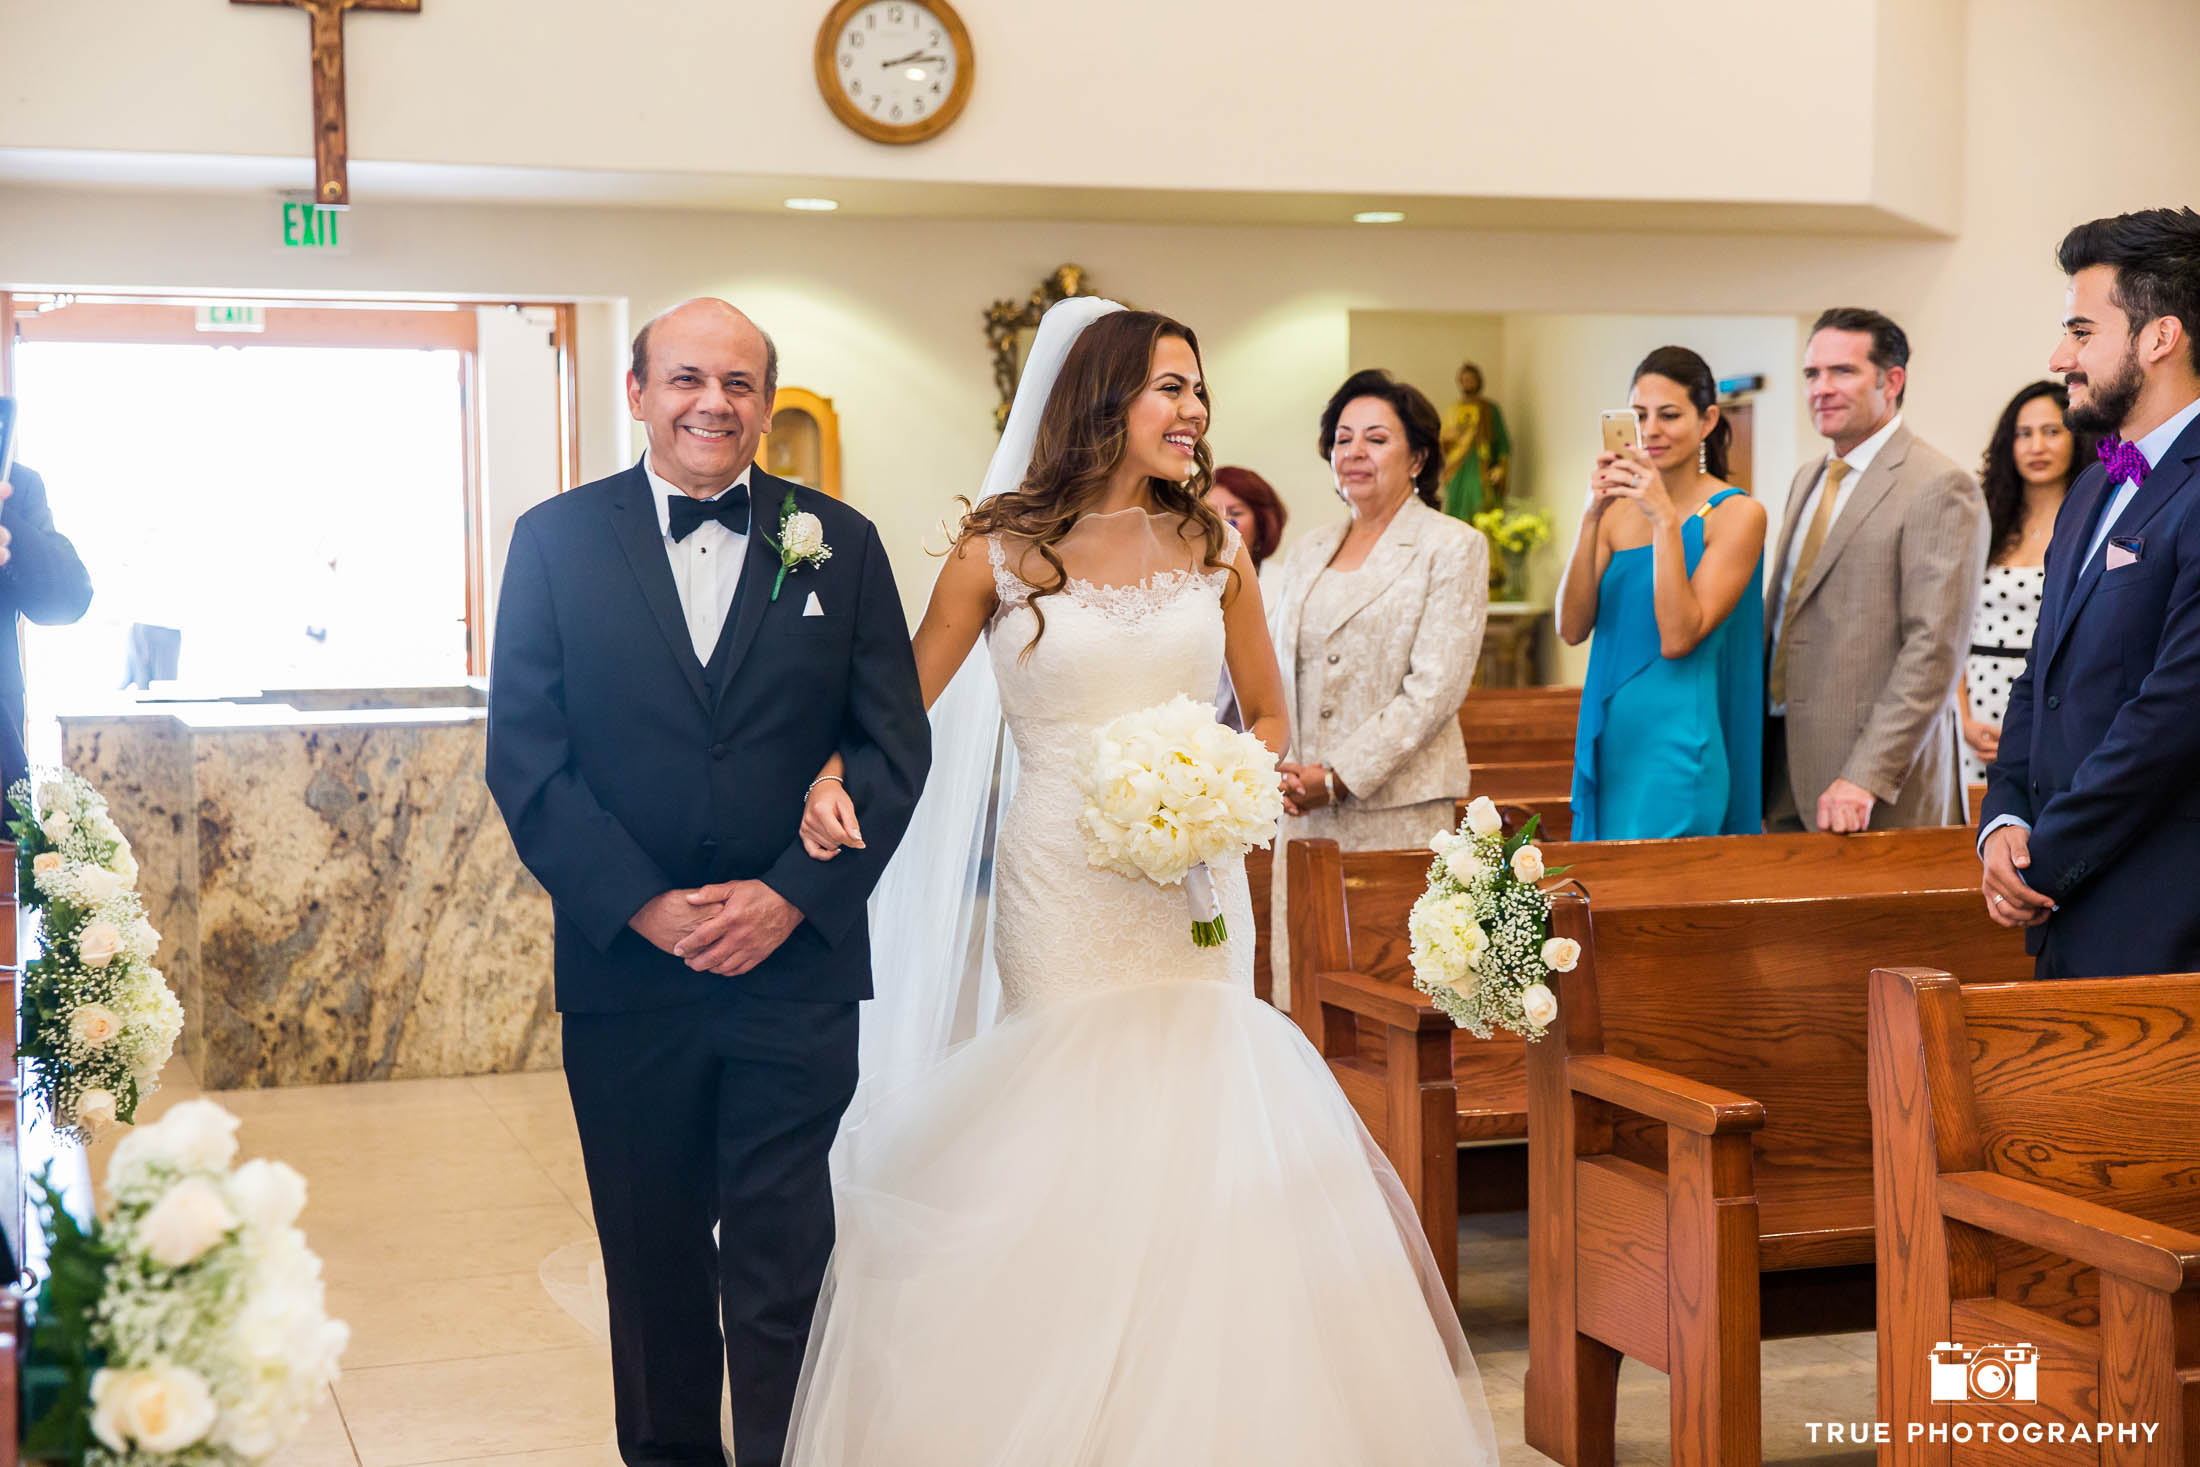 Father's candid reaction to walking bride down aisle during church ceremony